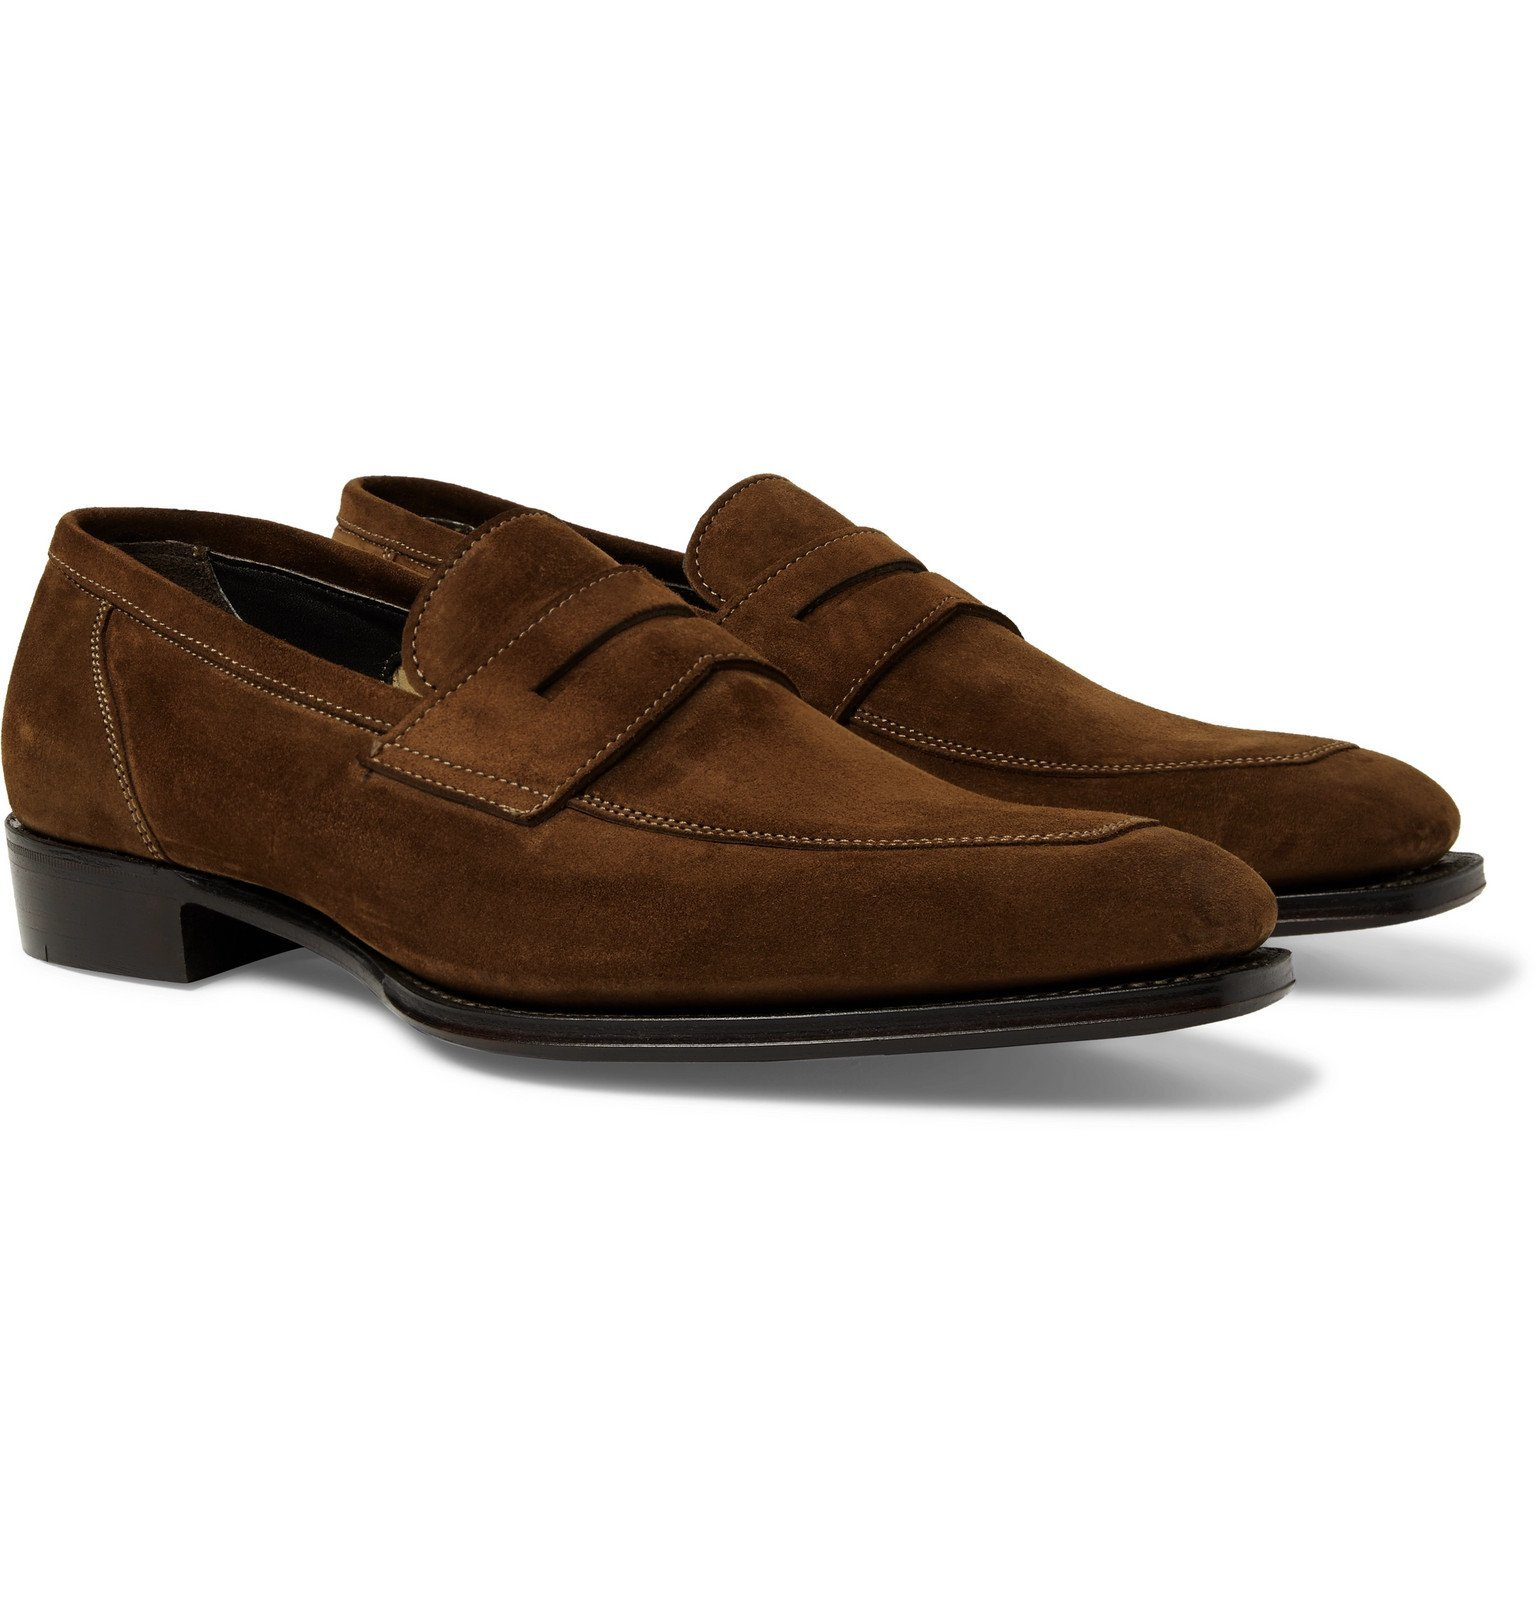 Photo: Kingsman - George Cleverley Suede Penny Loafers - Brown